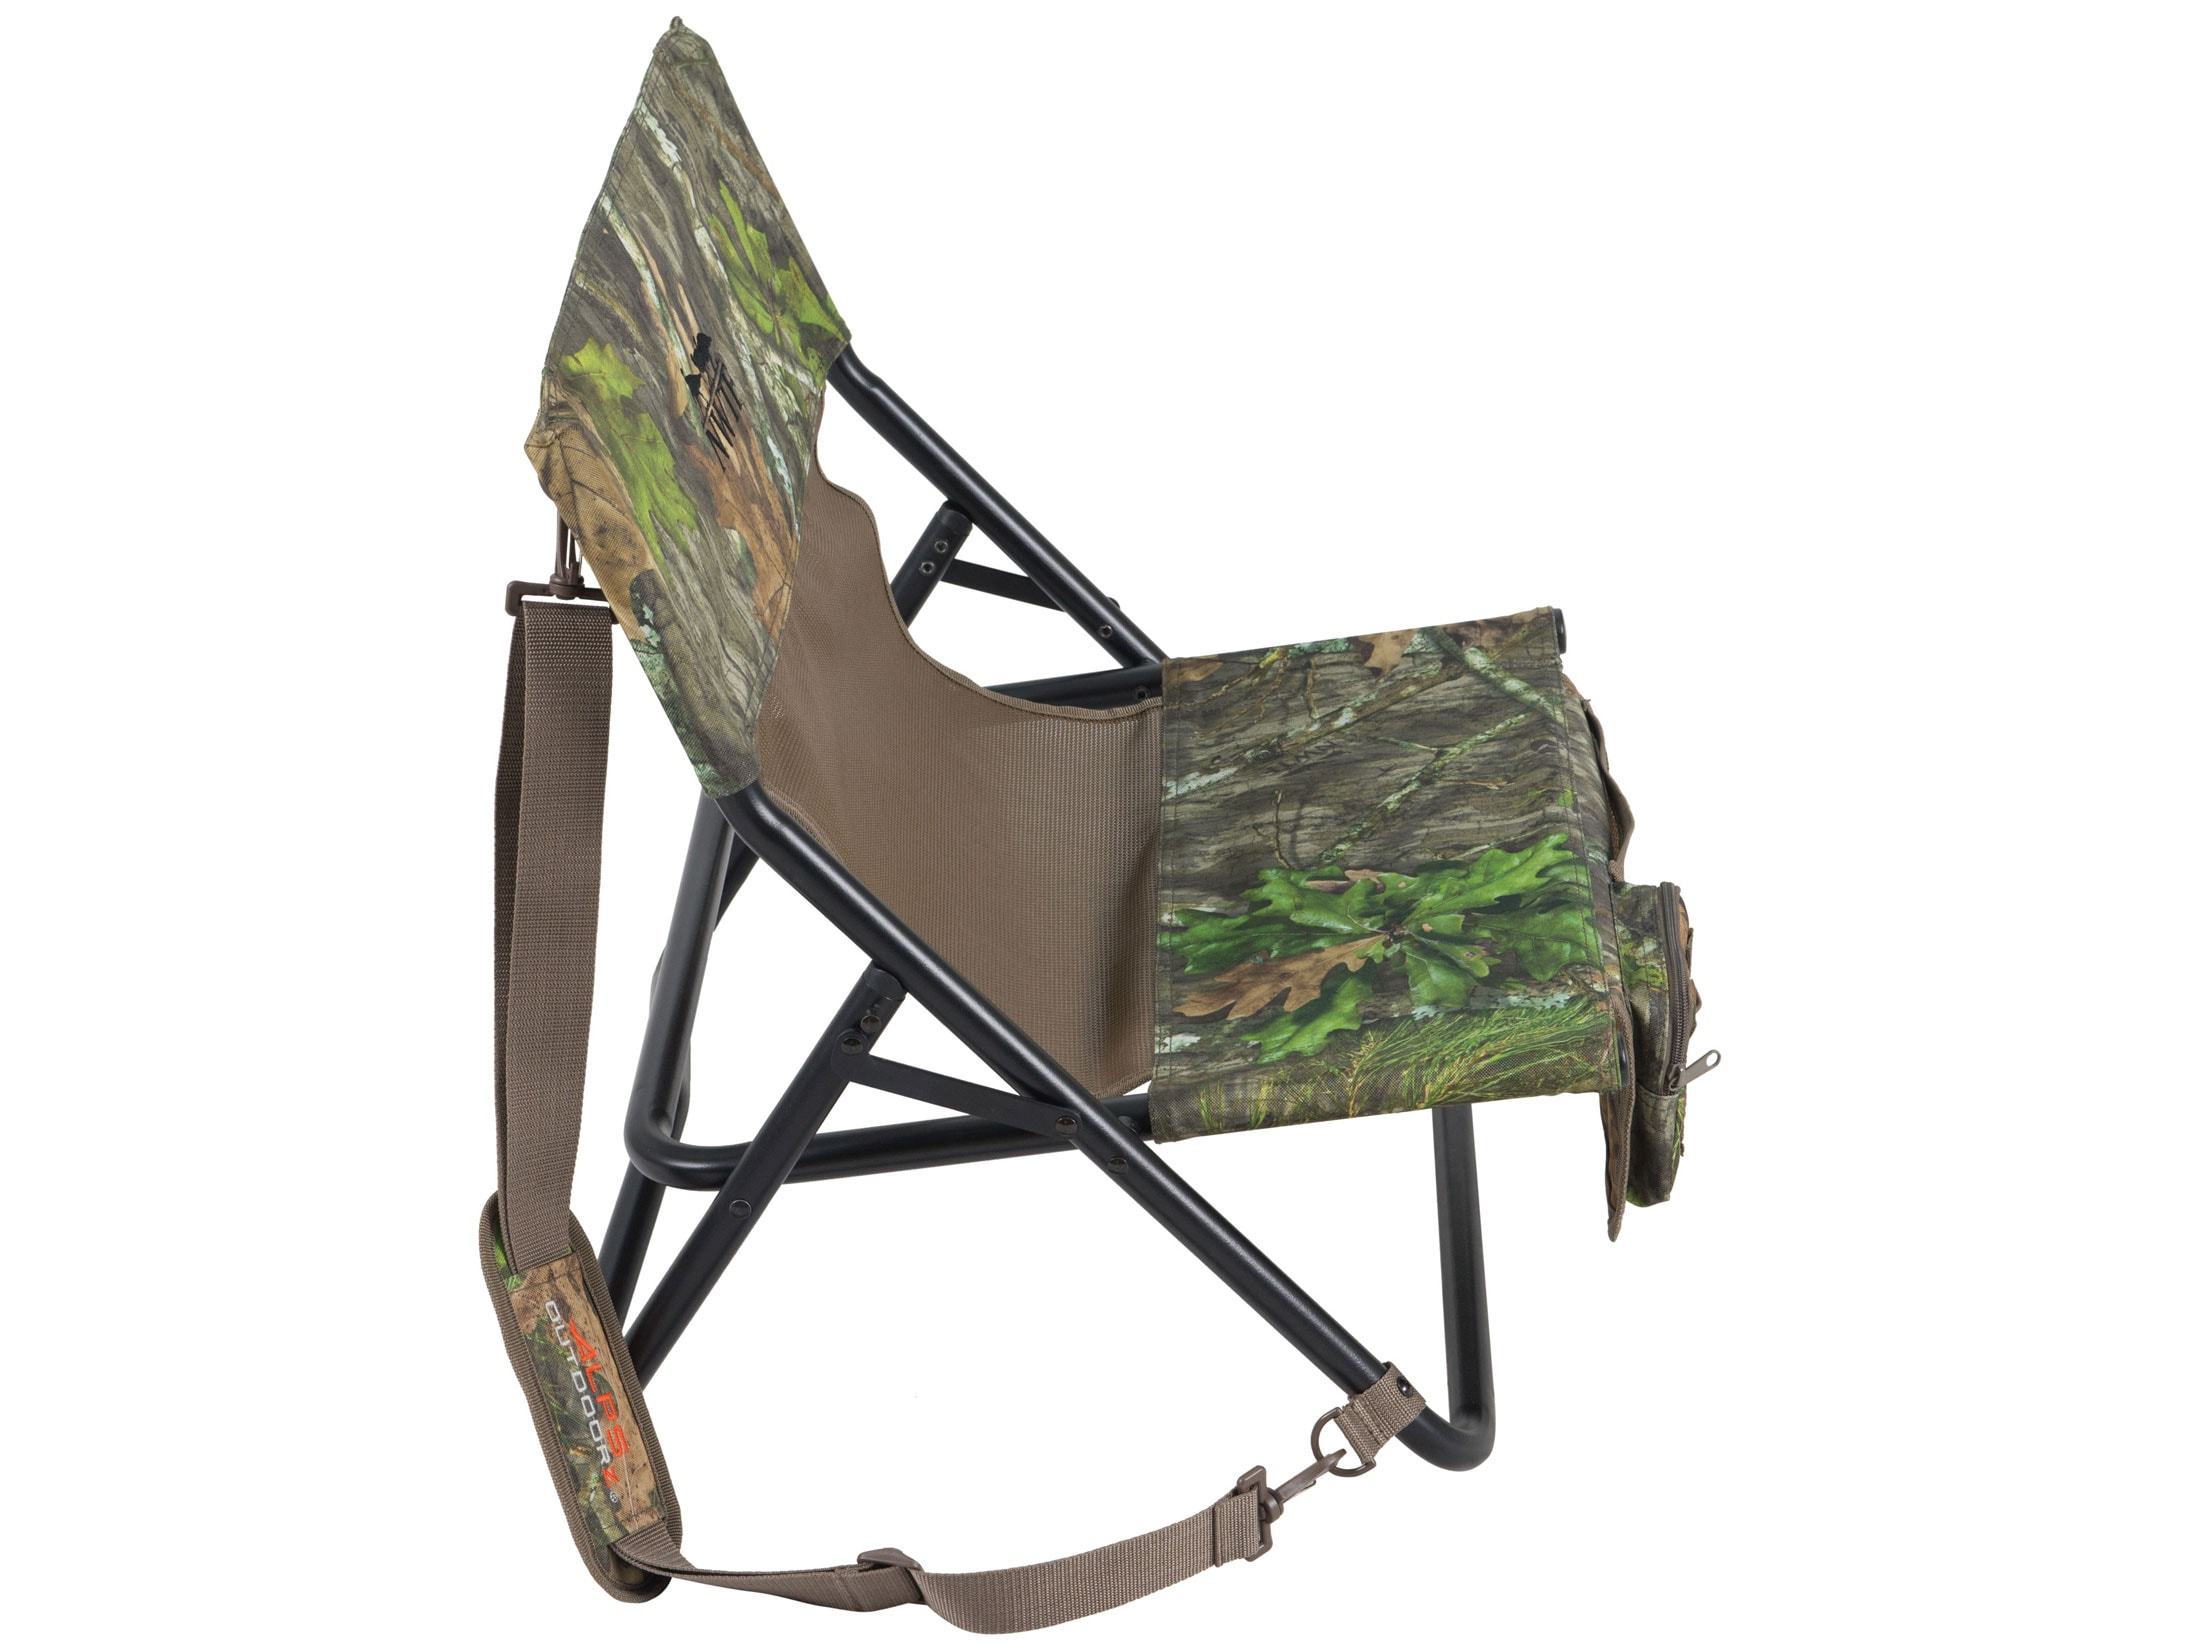 Prime Sport Alps Outdoorz Nwtf Turkey Chair More Comfort Cjindustries Chair Design For Home Cjindustriesco